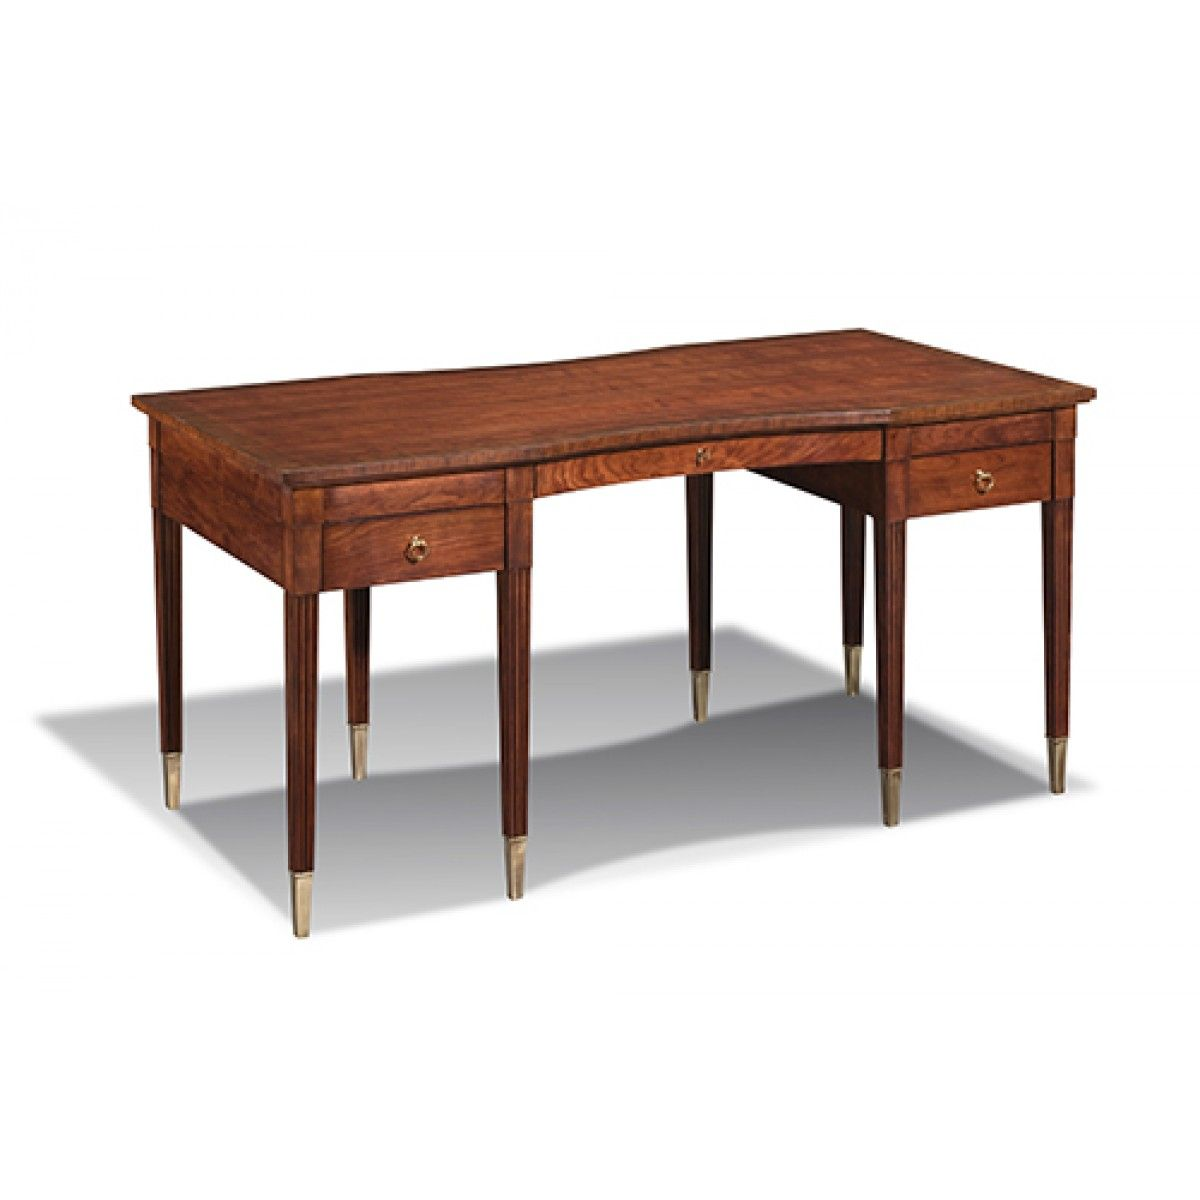 Wooden Desk Div P This Is A Cherry Finish Classic Writing Desk With Matching Chair It S Tra Traditional Writing Desk Classic Writing Desk Matching Chairs